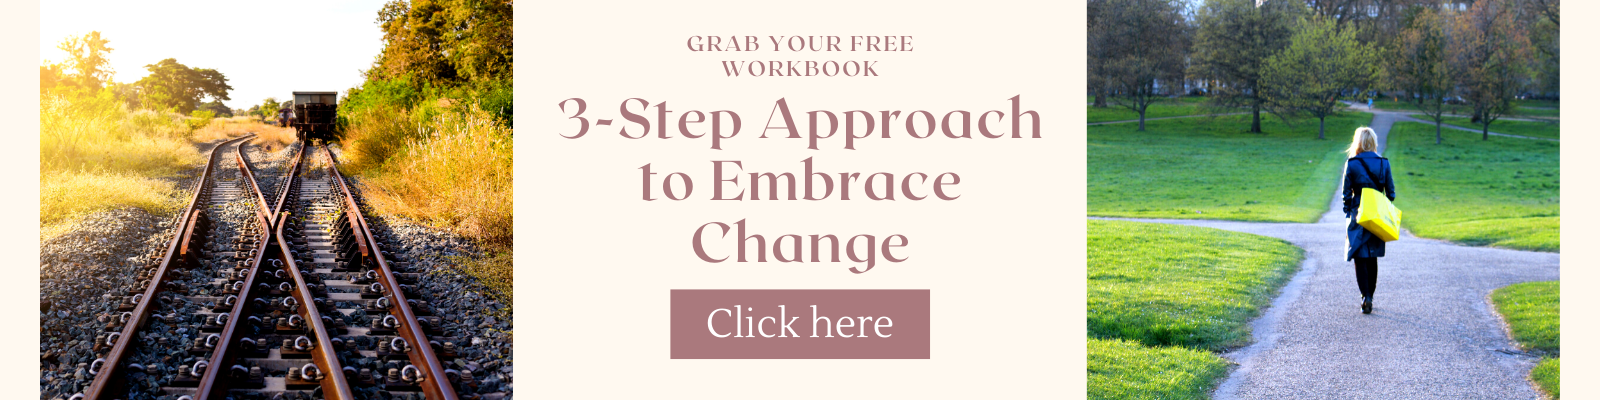 3 step approach to embrace change opt-in